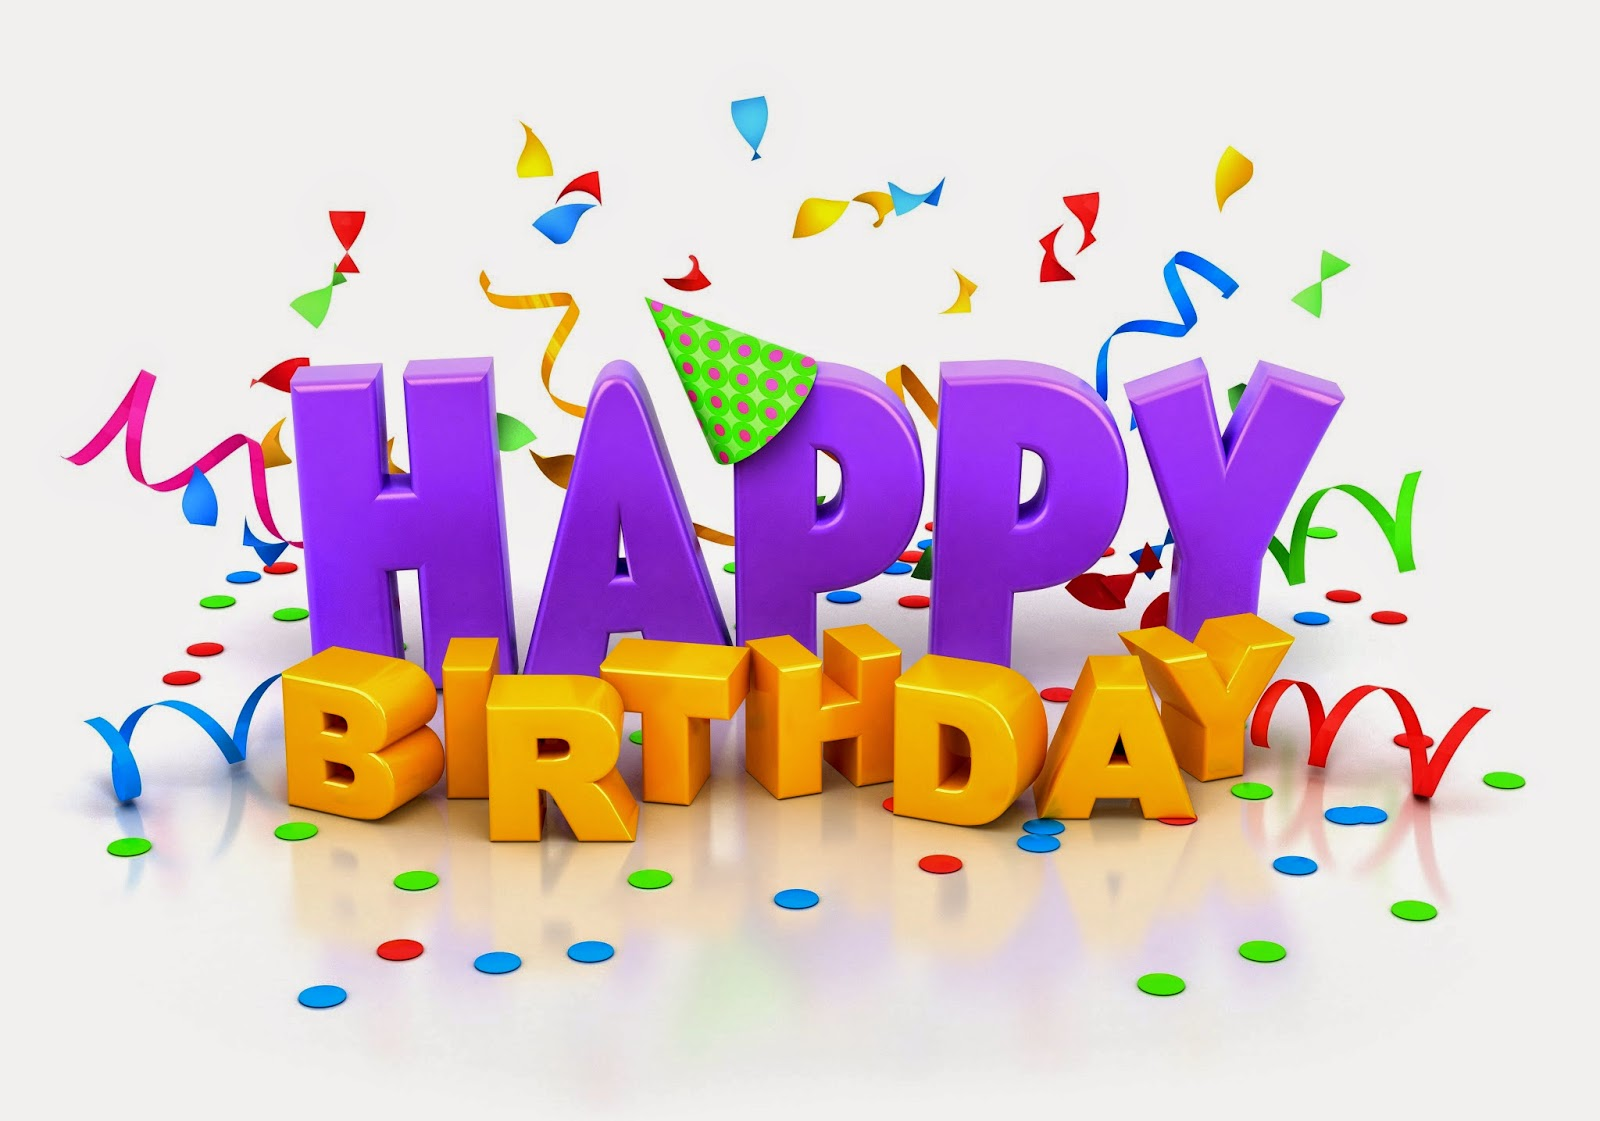 happy birthday clip art 3149a3cbd471568875a07420044184.